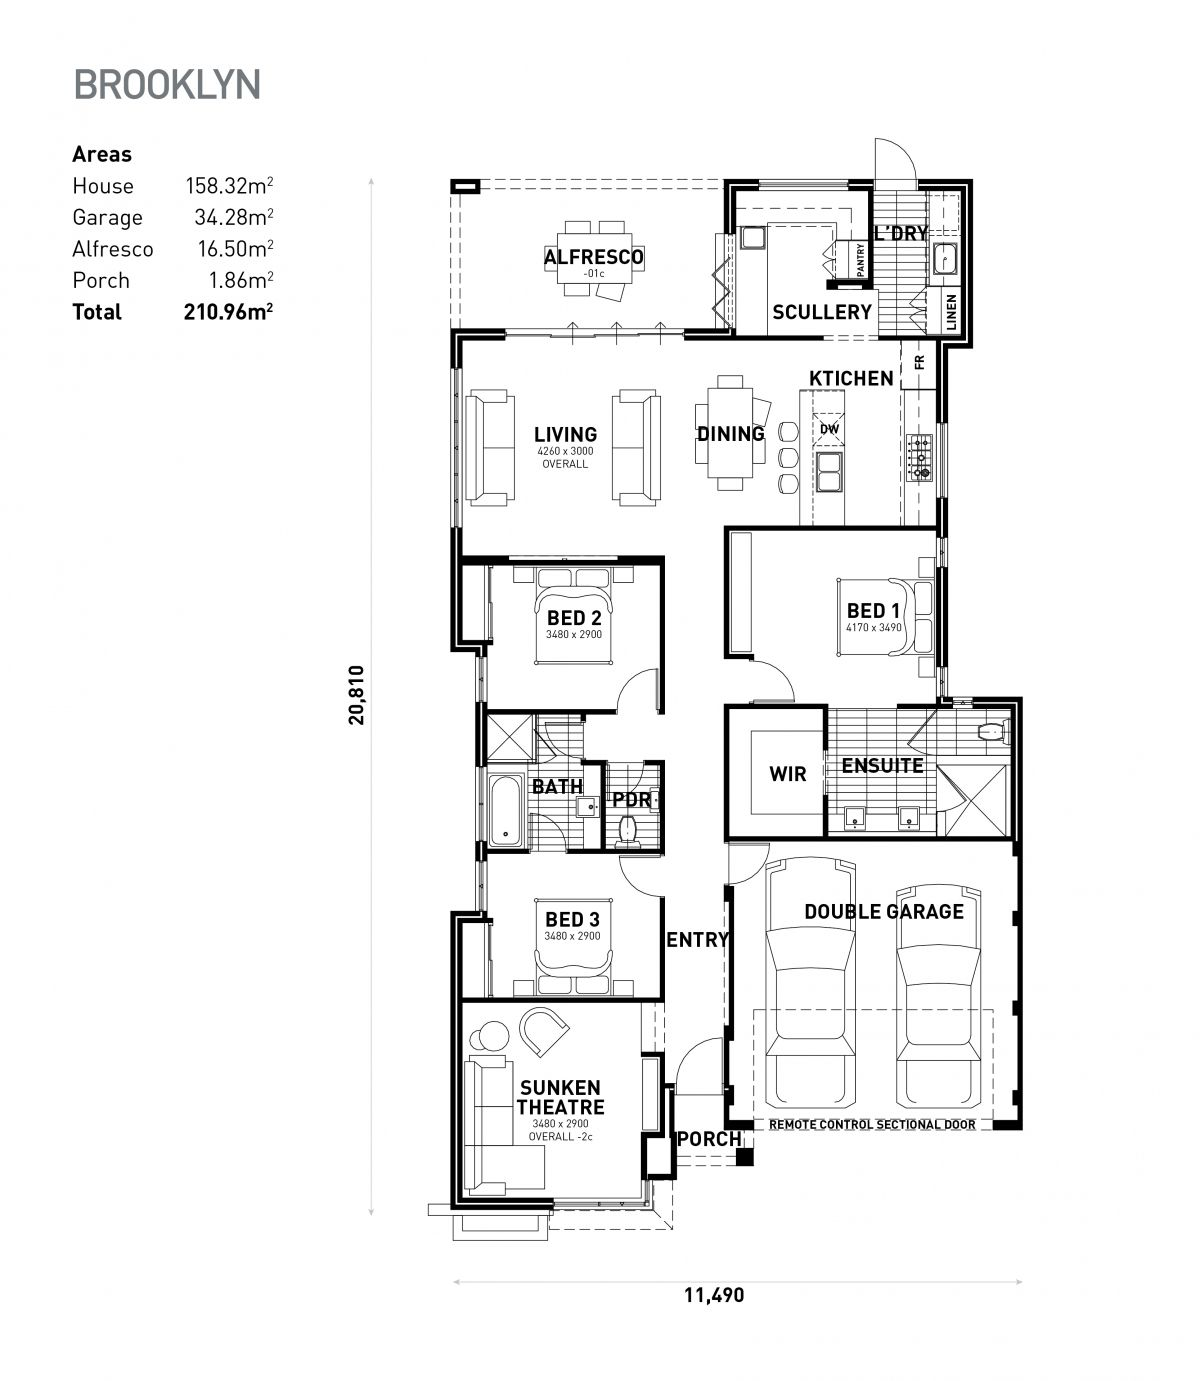 The Brooklyn Ideal Homes House Plans House Floor Plans New House Plans